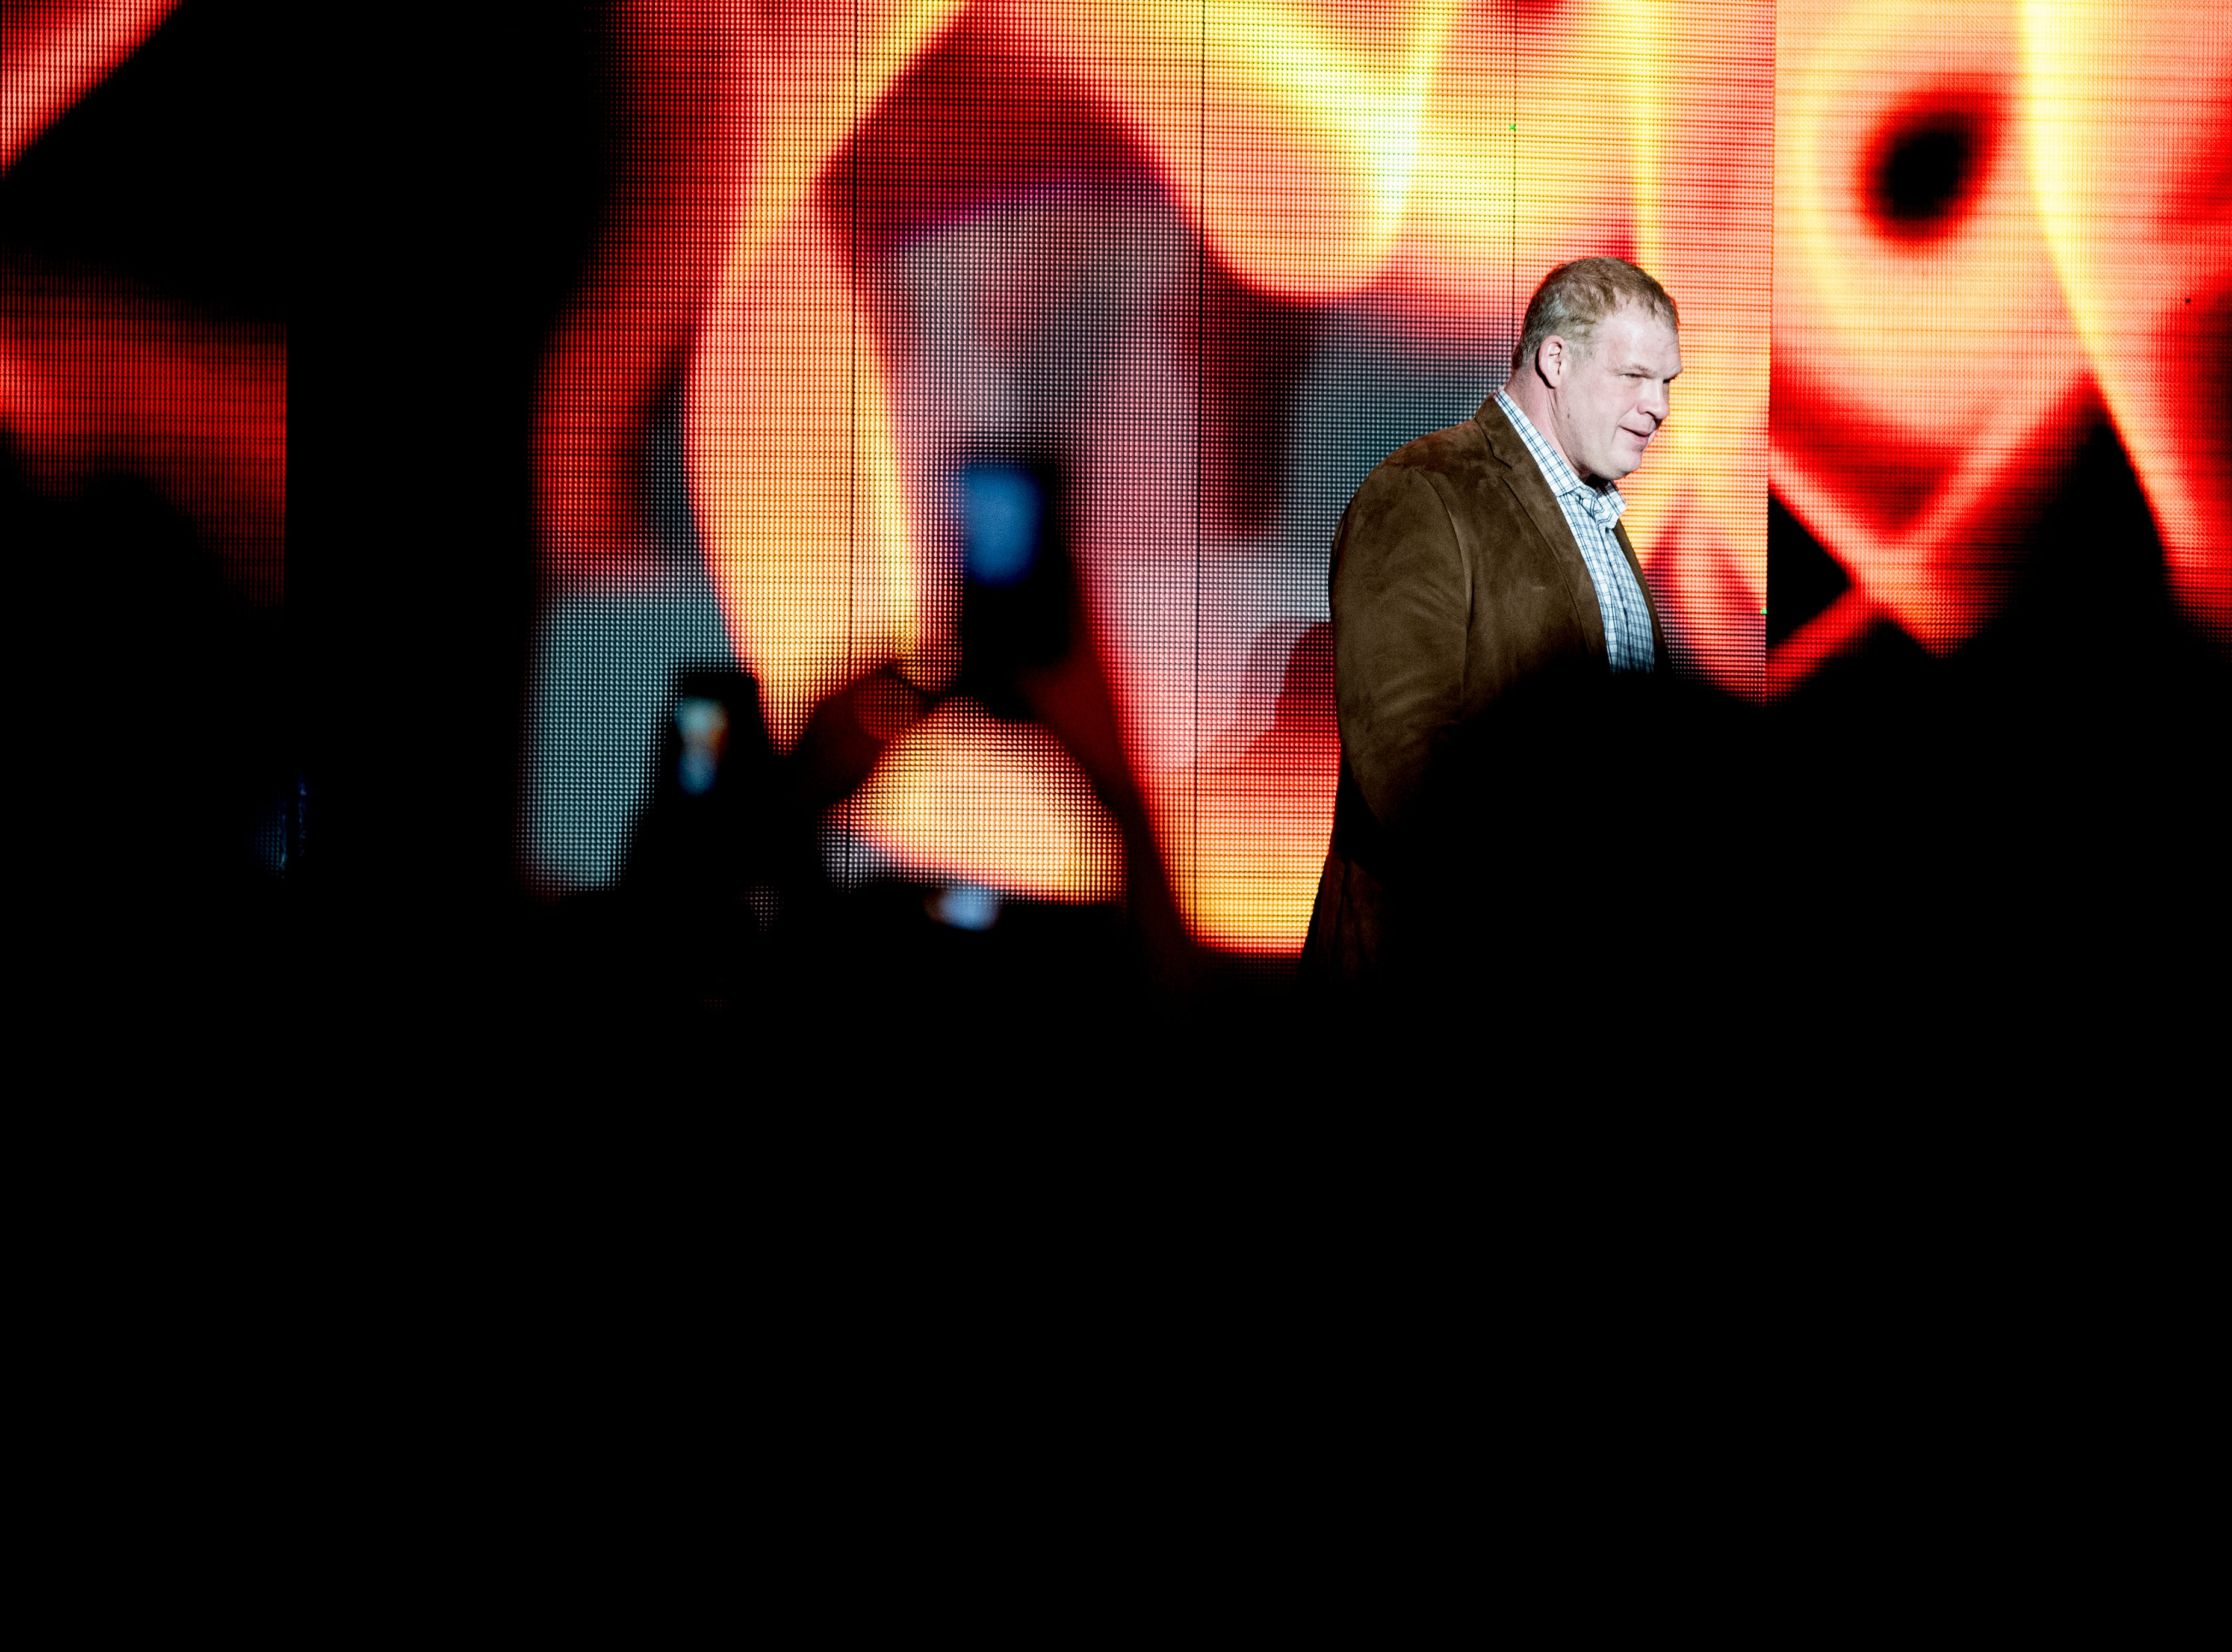 Knox County Mayor Glenn Jacobs, aka WWE wrestler Kane, walks into the arena during a WWE Live performance at the Knoxville Civic Coliseum in Knoxville, Tennessee on Saturday, January 12, 2019. *KNOXVILLE NEWS SENTINEL USE ONLY*